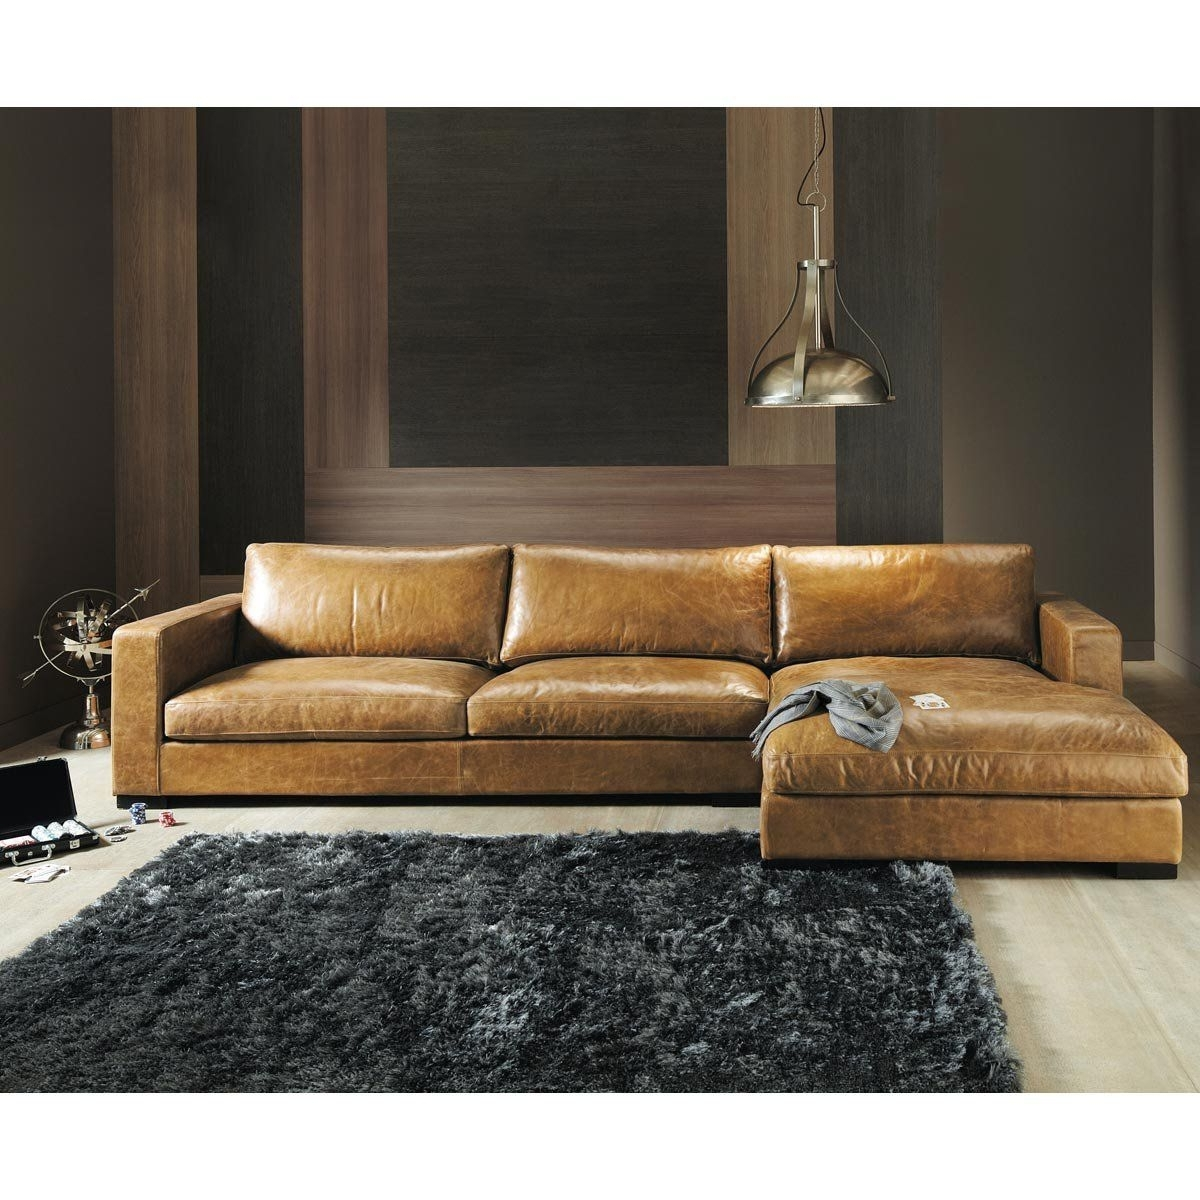 Sofa Seats, Leather In Most Current Camel Colored Sectional Sofas (View 12 of 15)